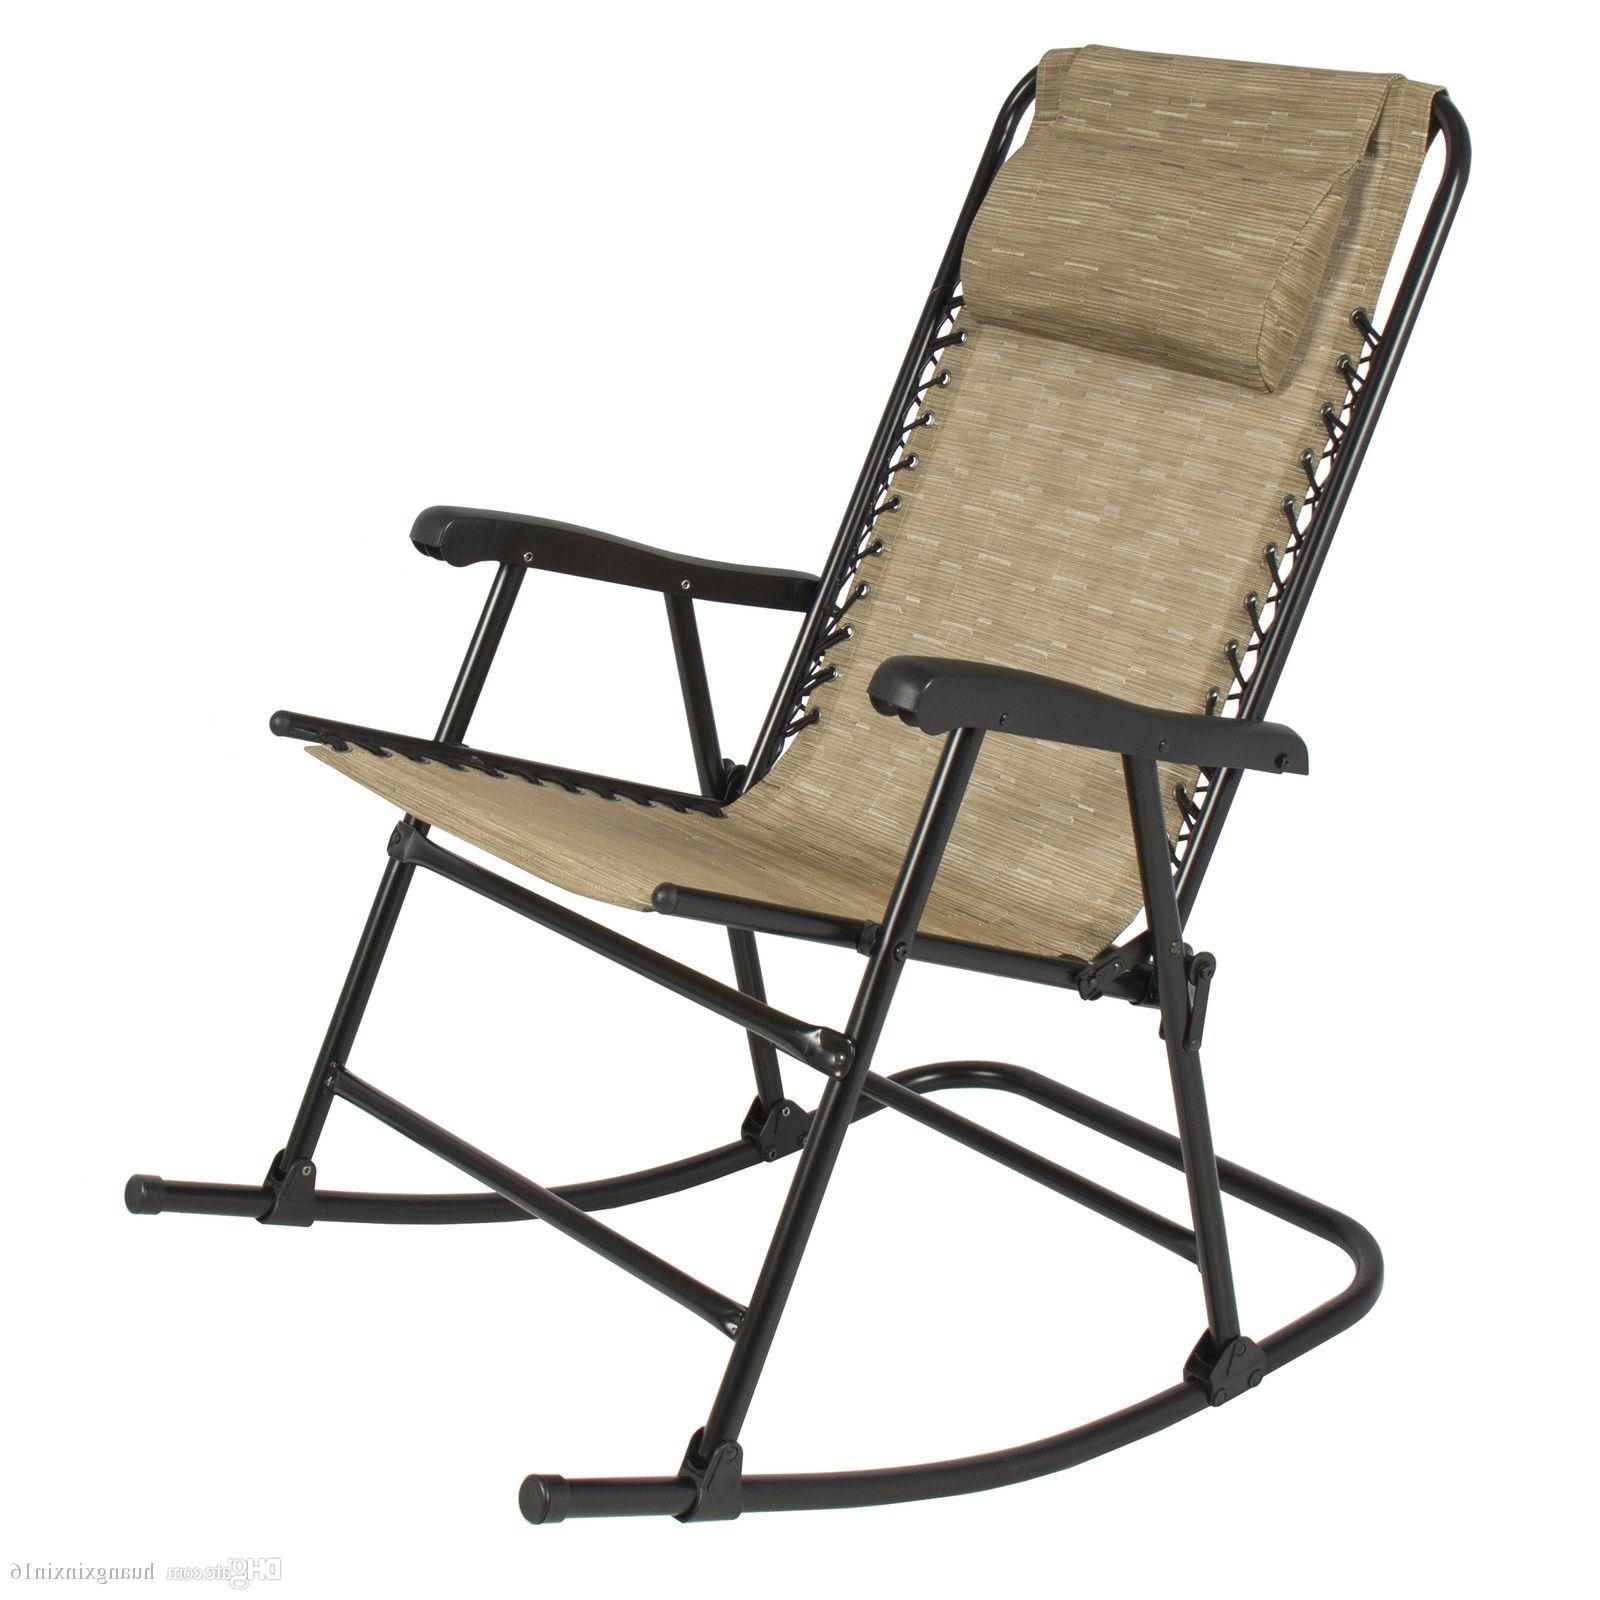 Best Best Choice Products Folding Rocking Chair Rocker Outdoor Patio With Regard To Well Known Folding Rocking Chairs (View 2 of 15)